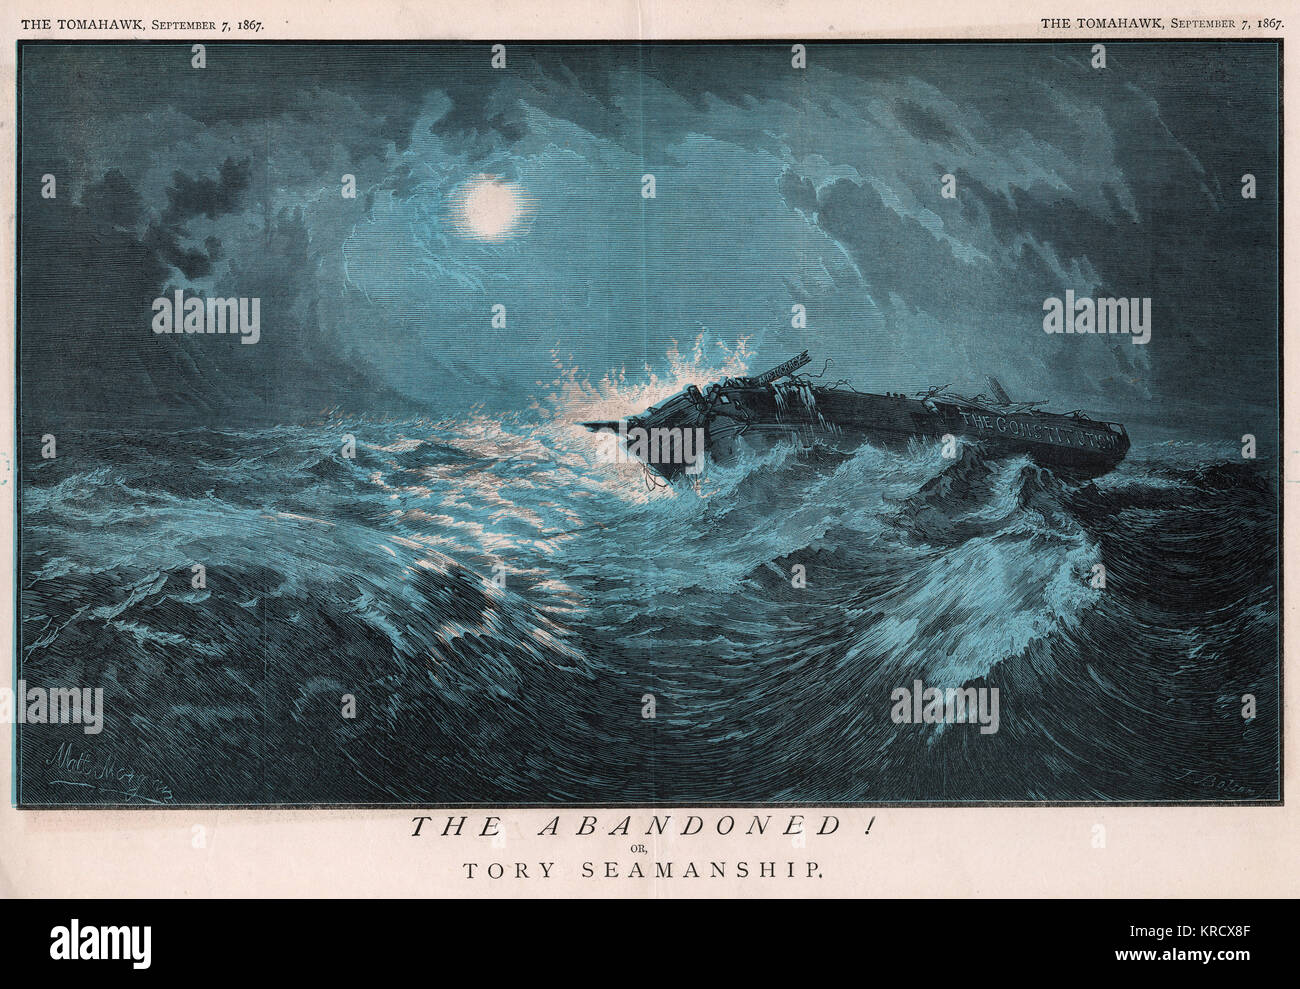 'The Abandoned! or Tory  Seamanship' The Constitution lies wrecked and adrift. A comment on  Disraeli's Reform Act, Stock Photo